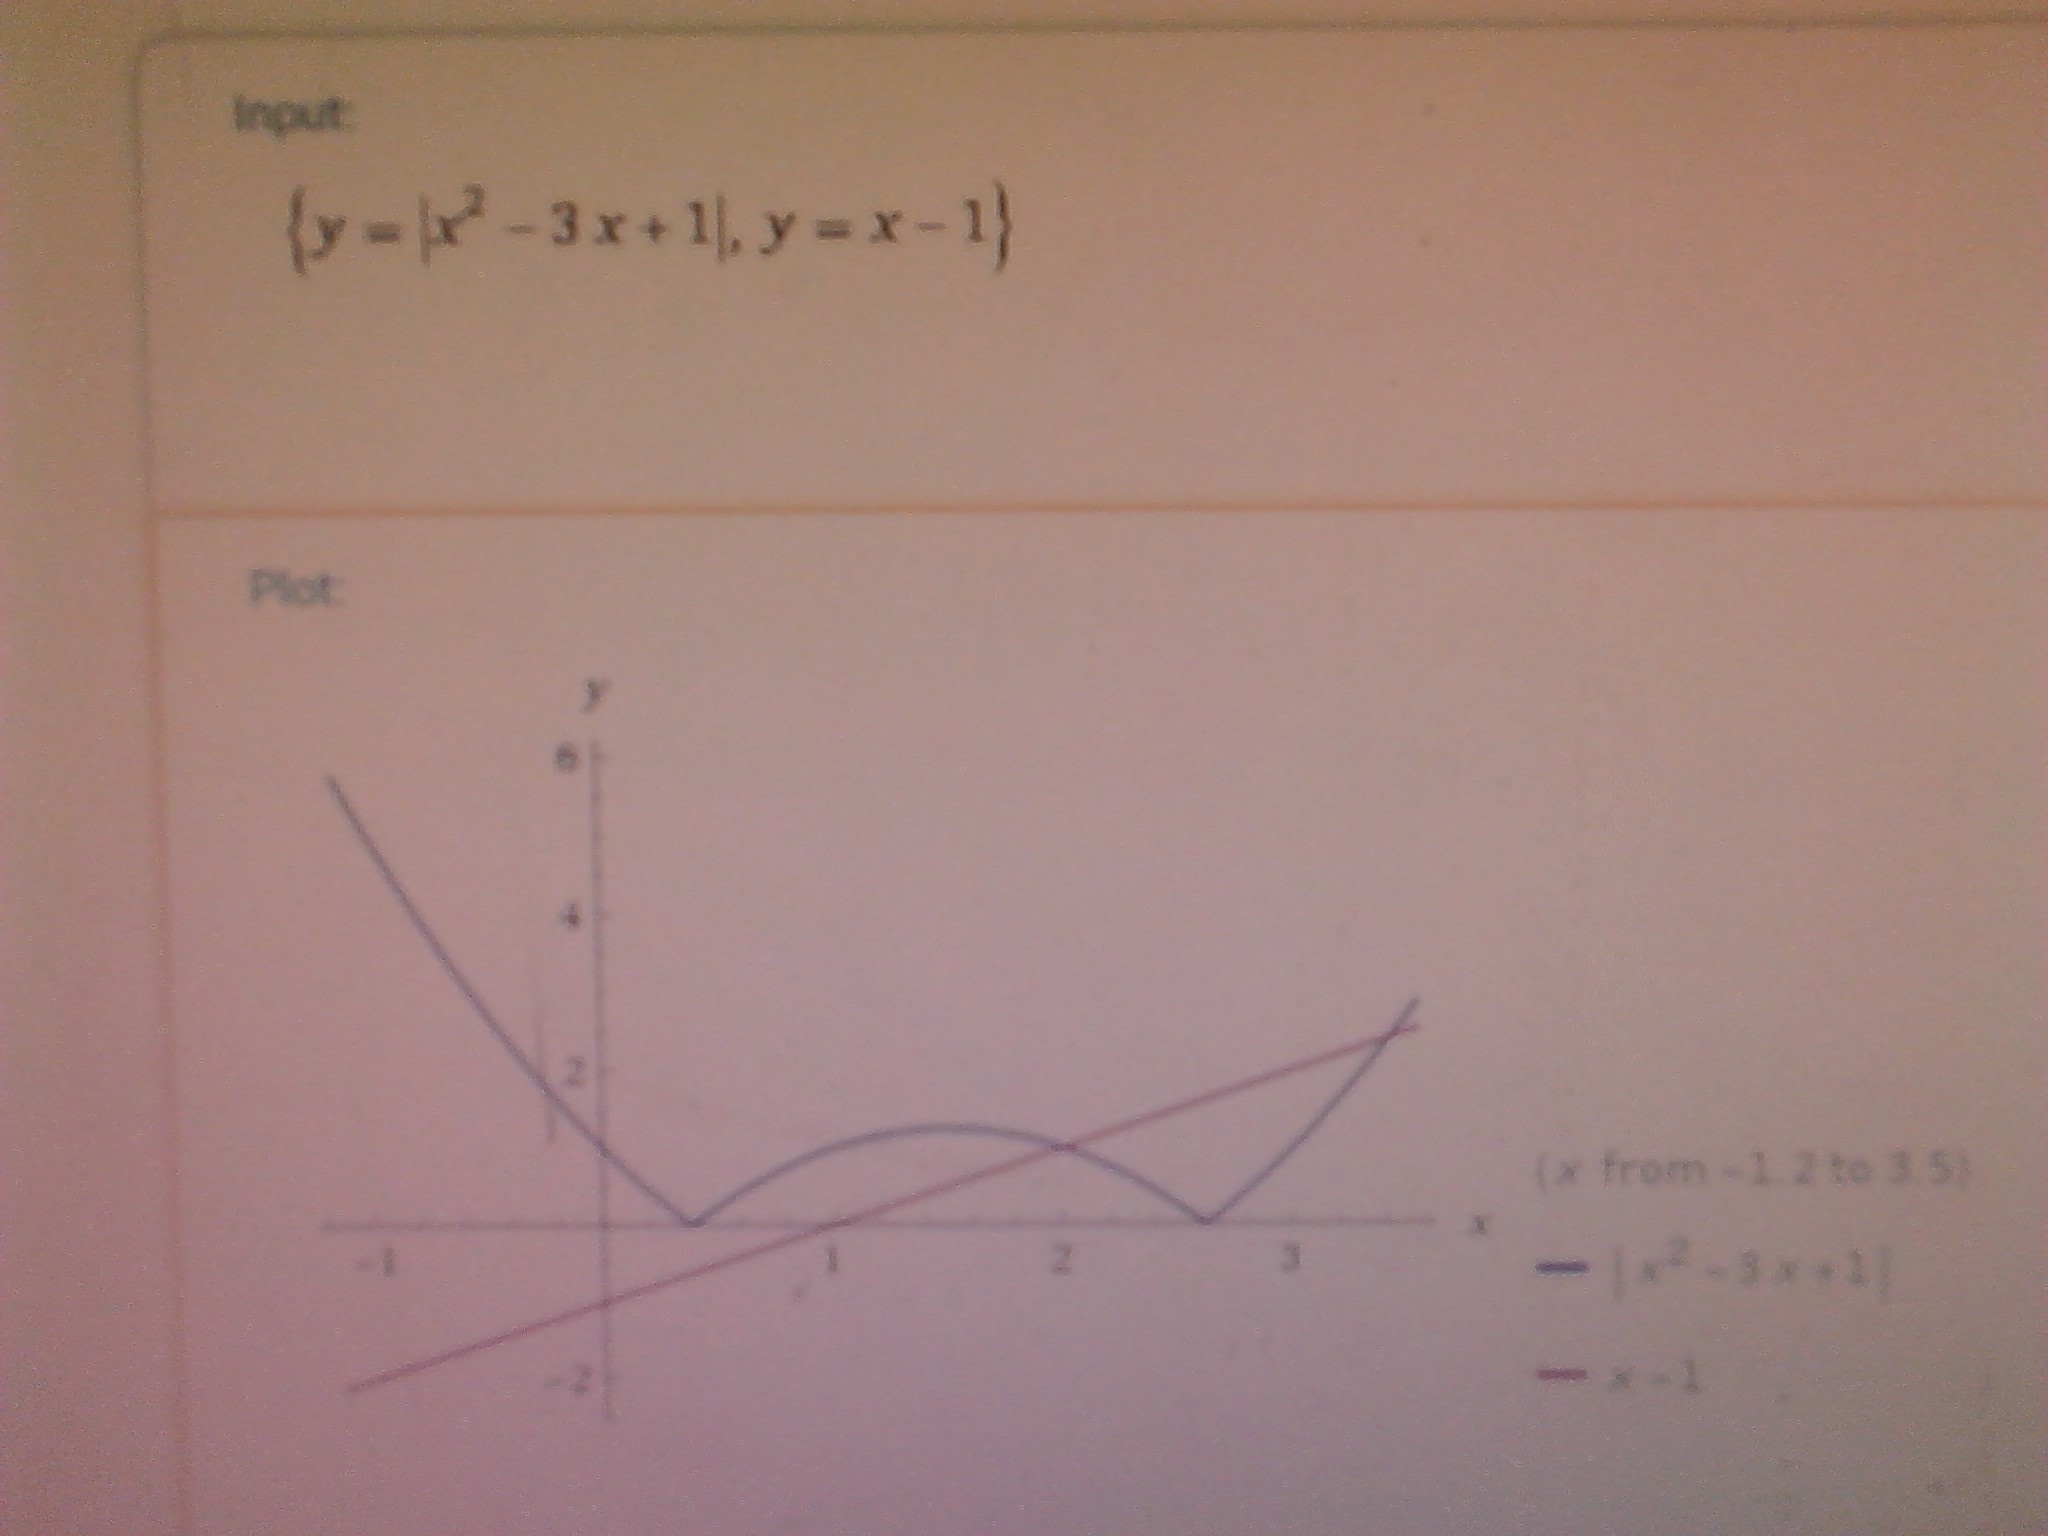 Find The Approximate Solution Of This System Of Equations